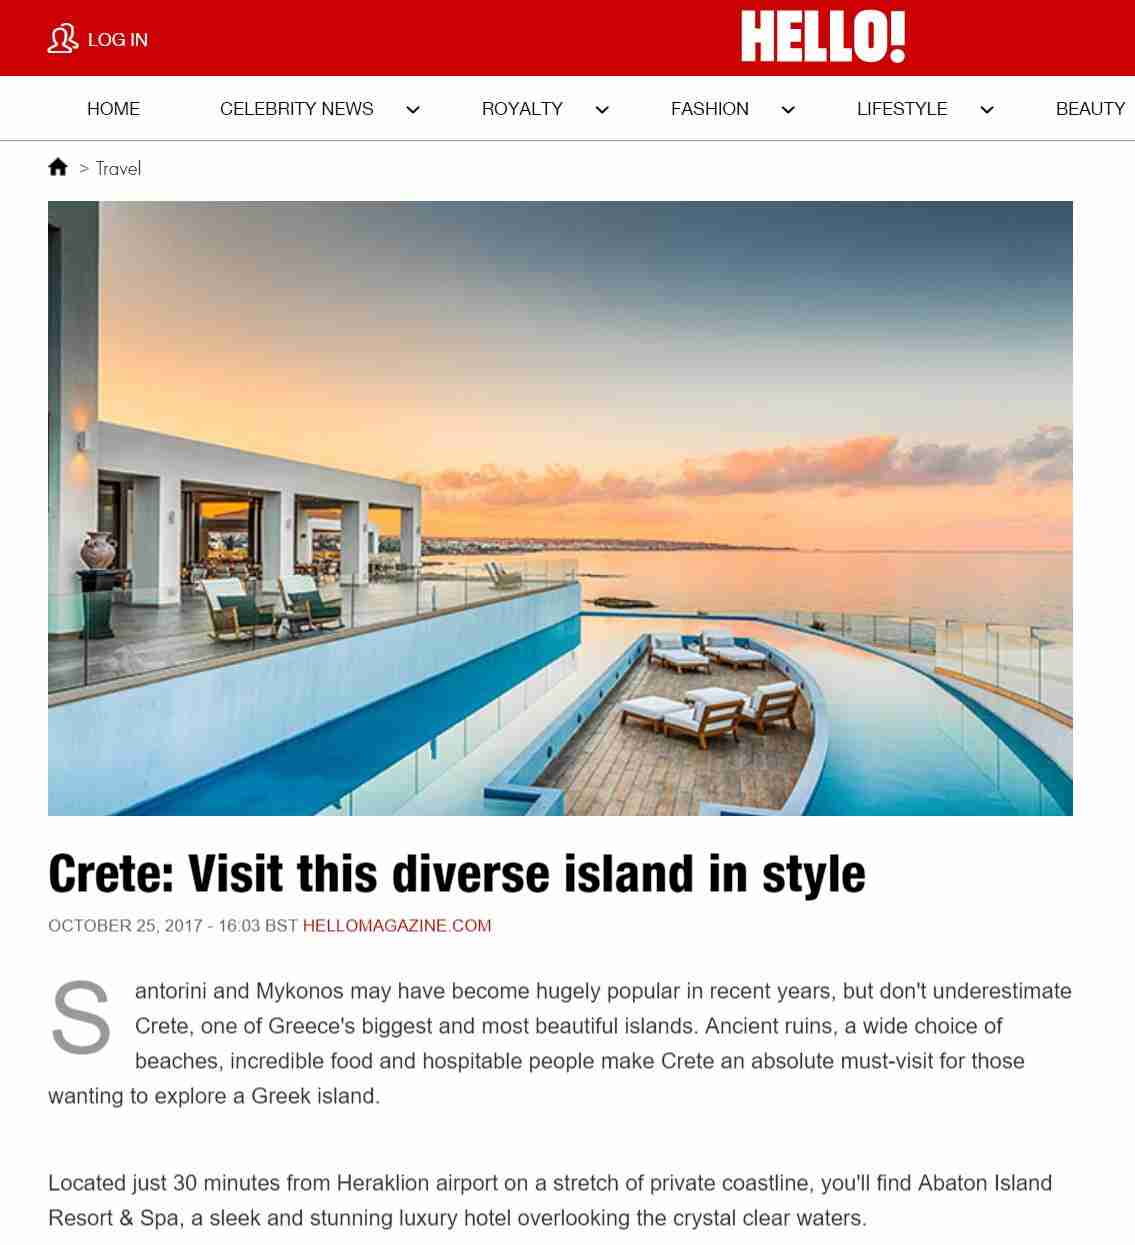 Crete: Visit this diverse island in style